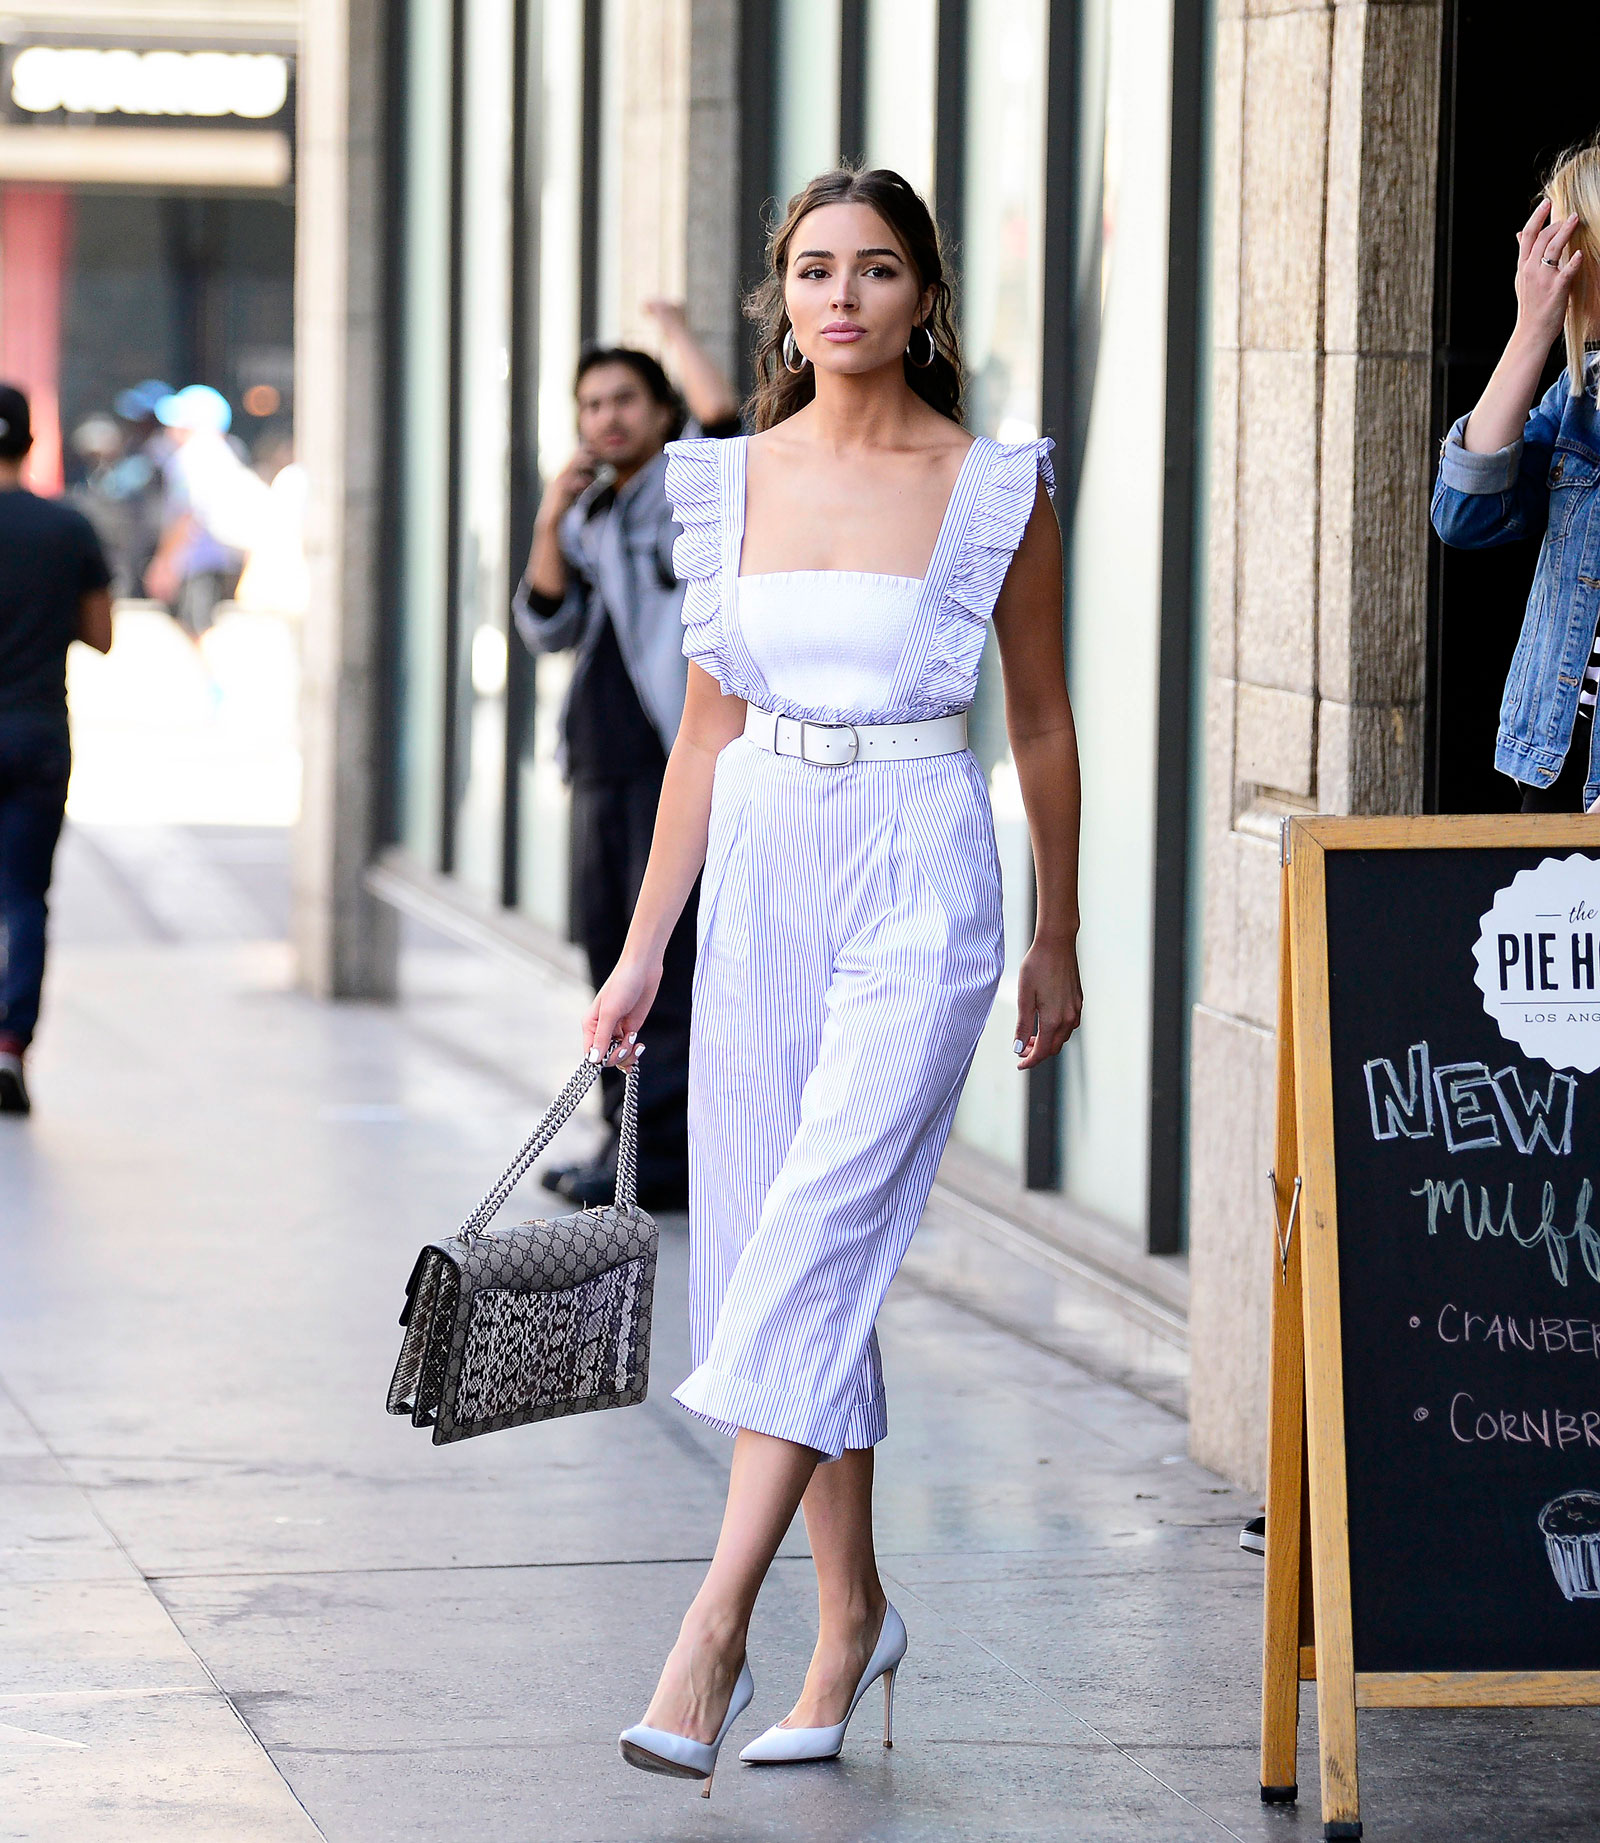 Olivia Culpo's Striped Jumpsuit and Gucci Handbag Look for Less - The Budget Babe | Affordable Fashion & Style Blog